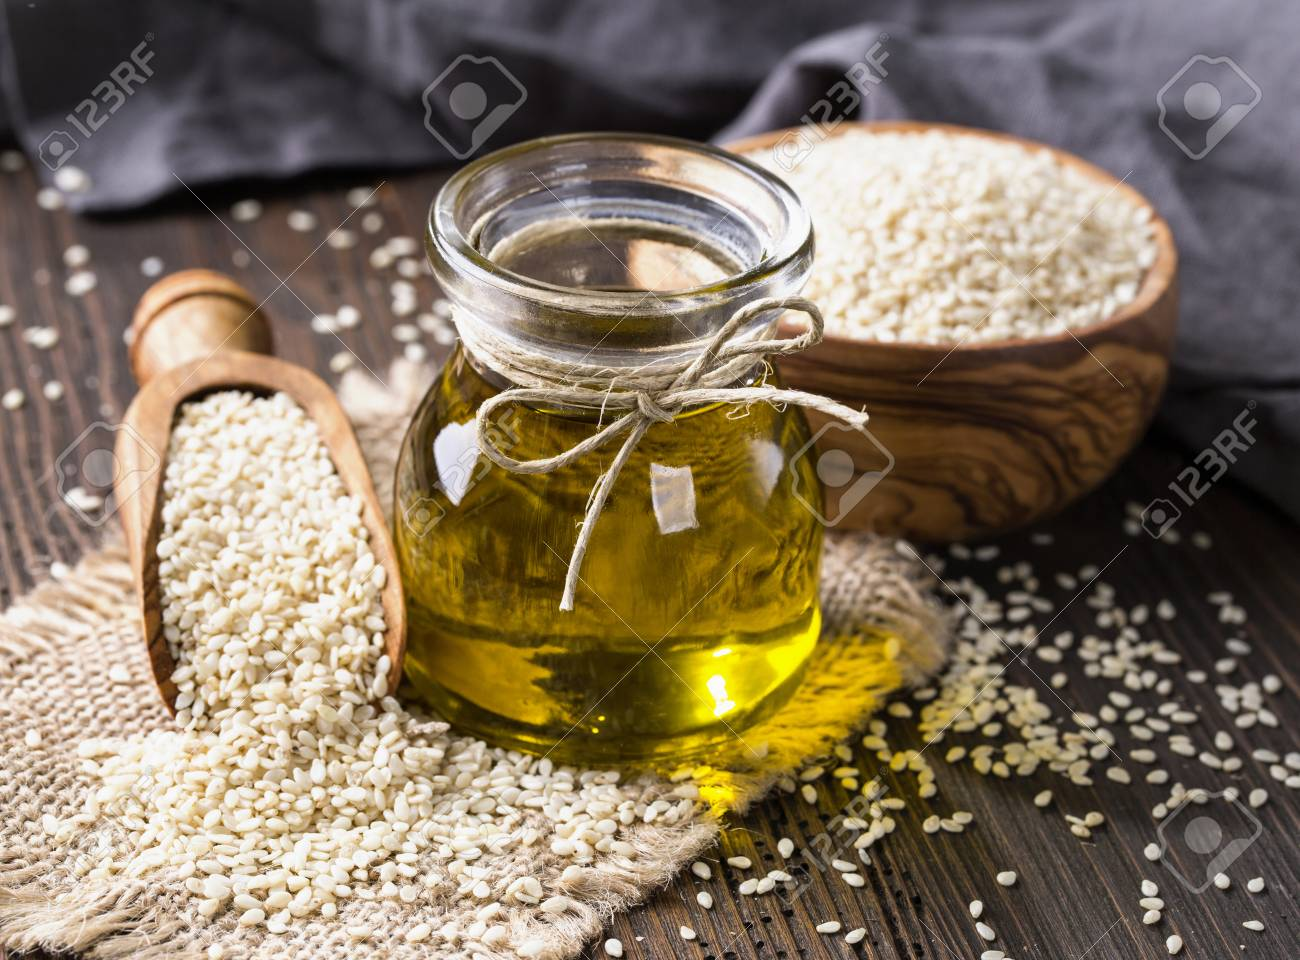 Sesame oil in glass and seeds - 81193429